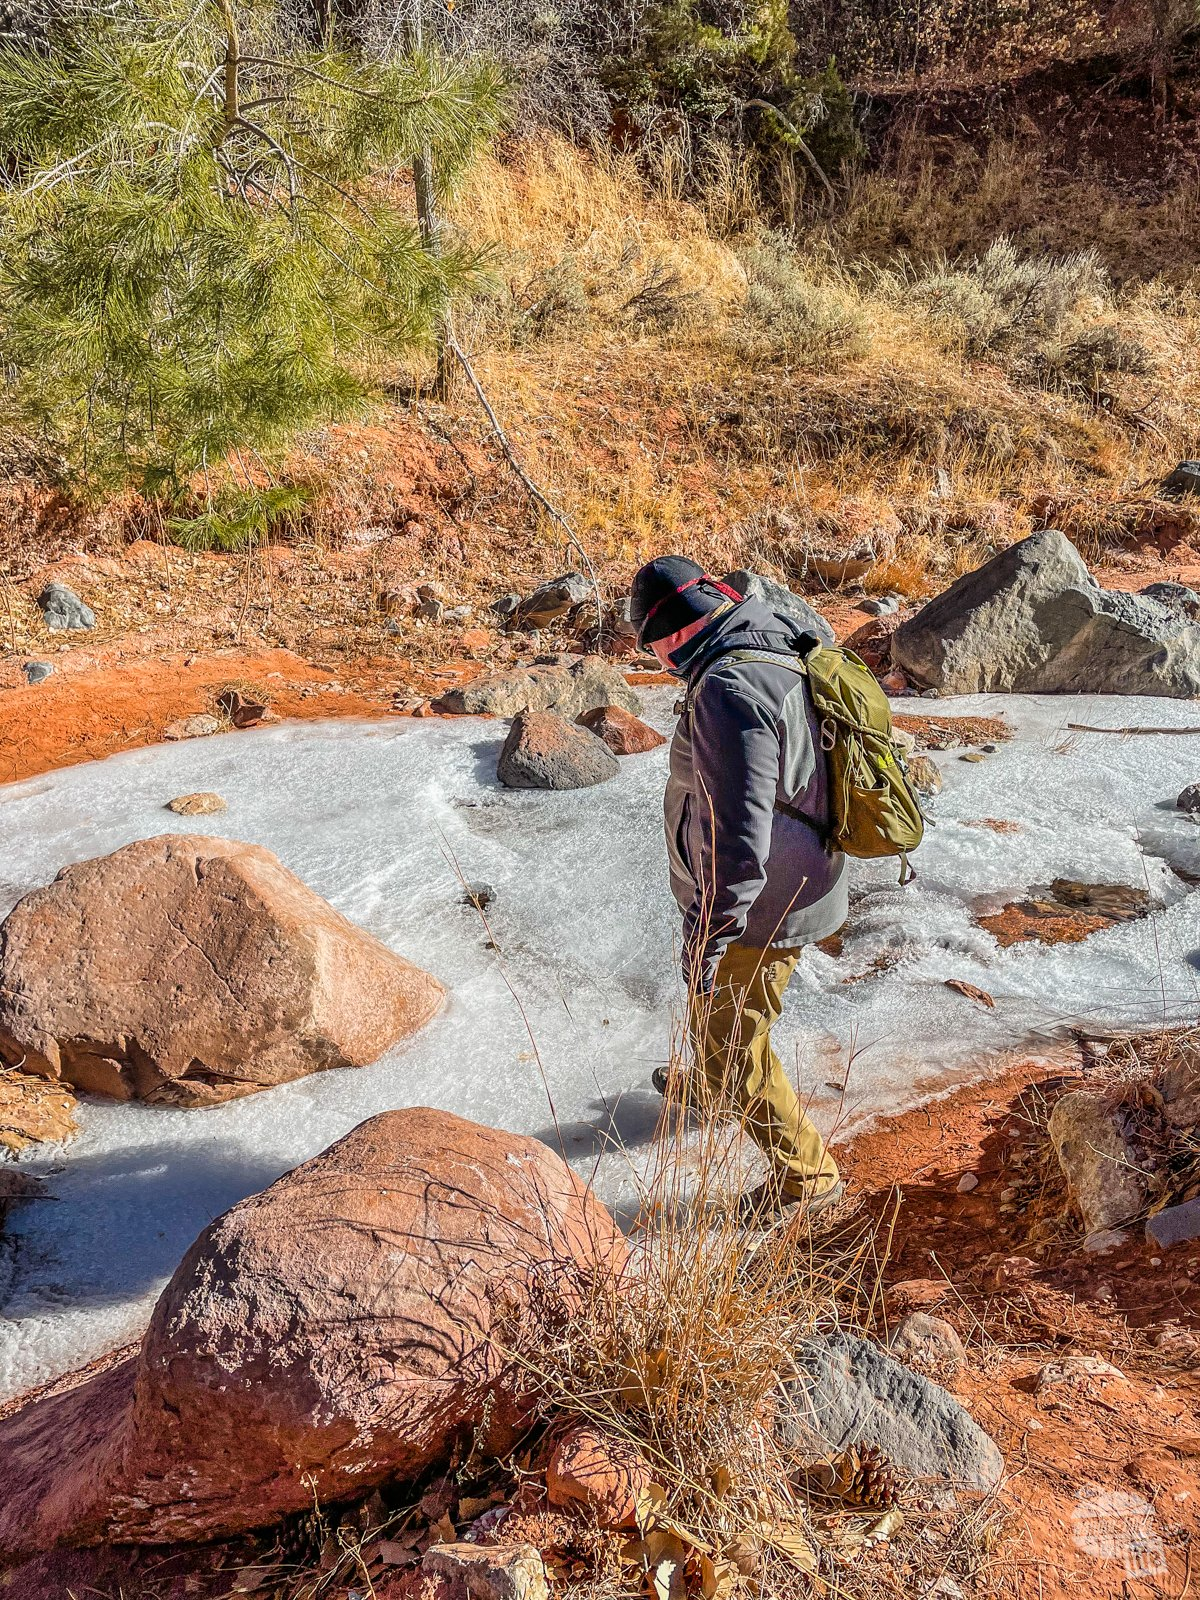 Grant attempts to cross the iced Taylor Creek at Kolob Canyons in Zion National Park.